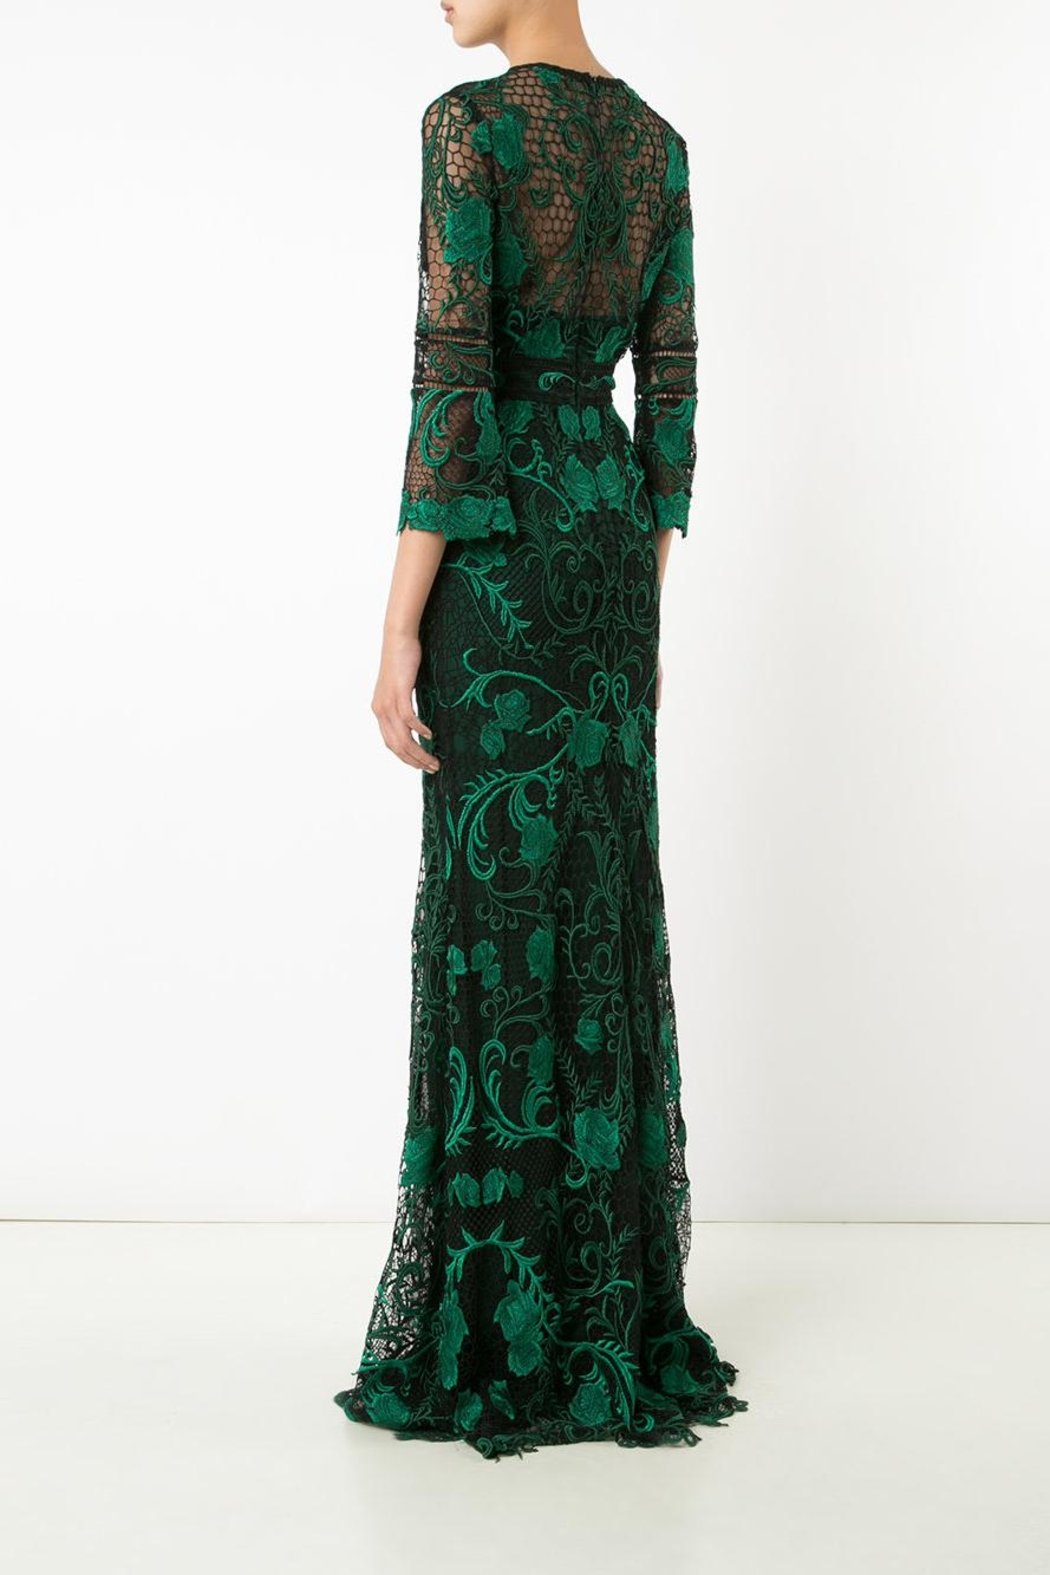 e0bd034c54 Marchesa Guipure Lace Gown from New Jersey by District 5 Boutique ...